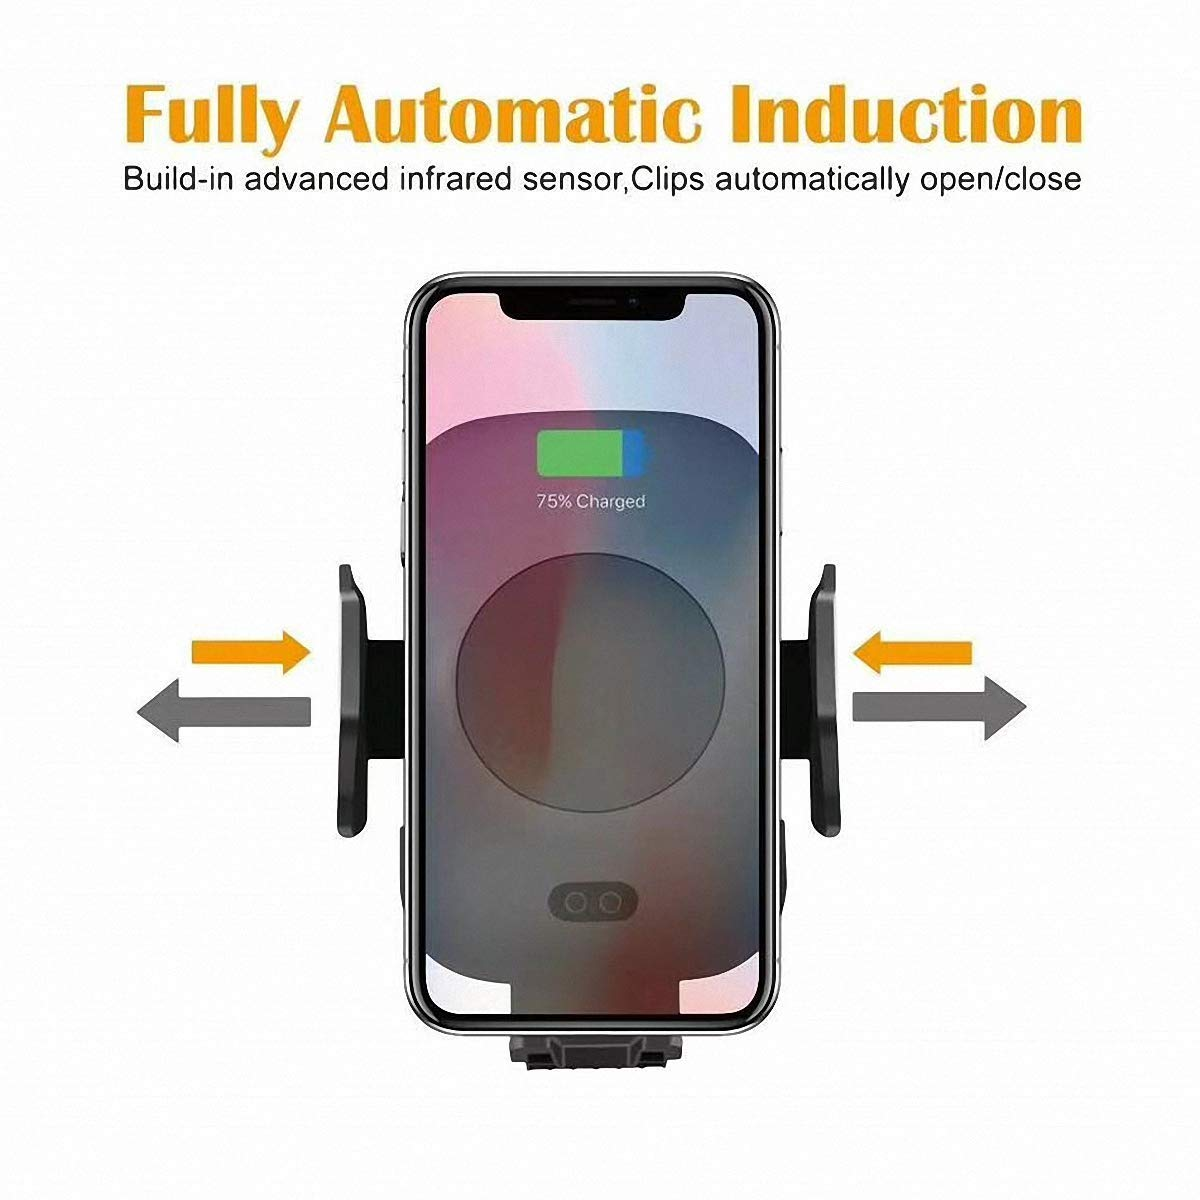 TOOBOSS Wireless Car Charger, Auto-Clamp Qi Car Mount, Fast Infrared Car Mount Wireless Charger 10W Qi Wireless Charger Phone Holder Compatible for iPhone Xs/XR/X /8 Samsung Galaxy S9 S8+ S8 S7 S7ed